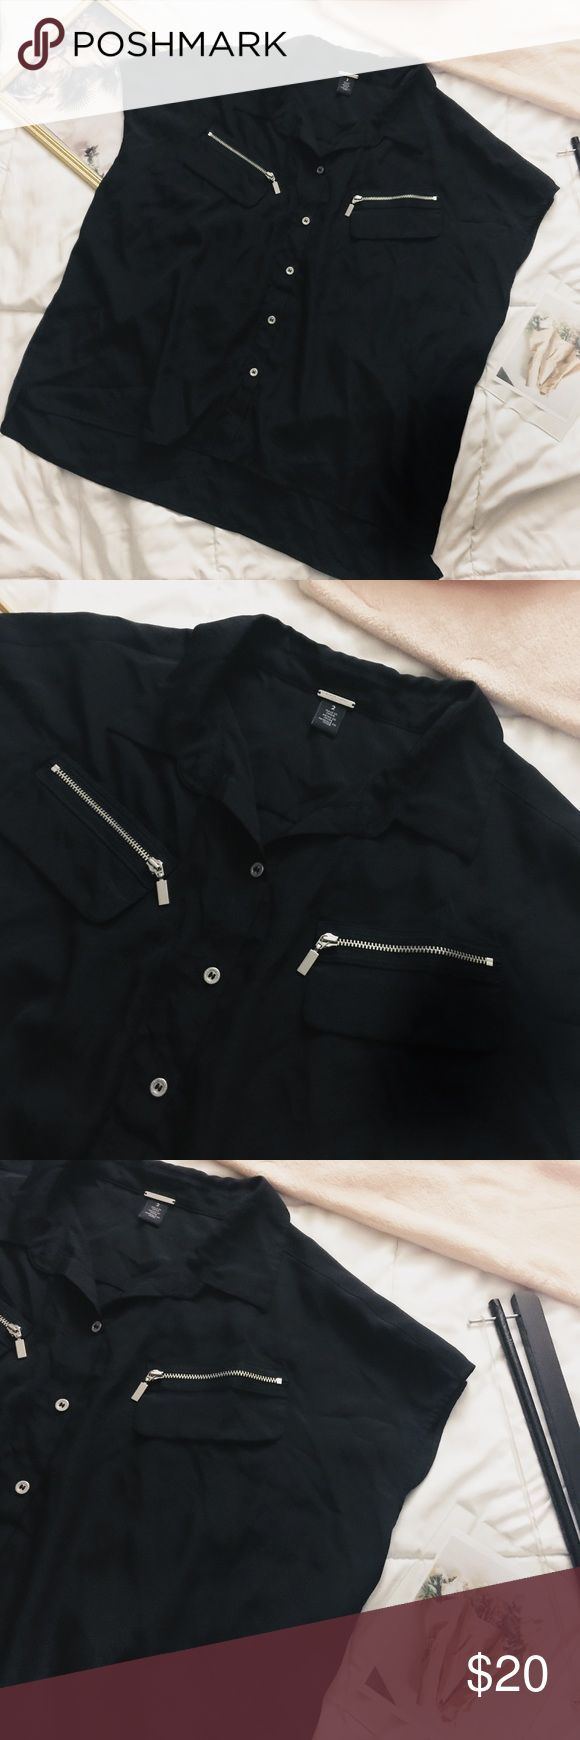 """[CHICOS BLACK LABEL] boxy zipper button down top * black with silver zippers and buttons * Has two small rectangular """"faux"""" pockets with zipper--on front  * Has a more boxy fit to it  * Shoulders have a slight """"batwing"""" style  * A tad sheer  * Has collared neckline  * Part of the black label collection at chicos  * Size 2 * High low hem  * Approximate measurements:  * 23"""" (front)  25"""" (back)  * Bust: 25.5"""" across (armpit to armpit) Chico's Tops Button Down Shirts"""